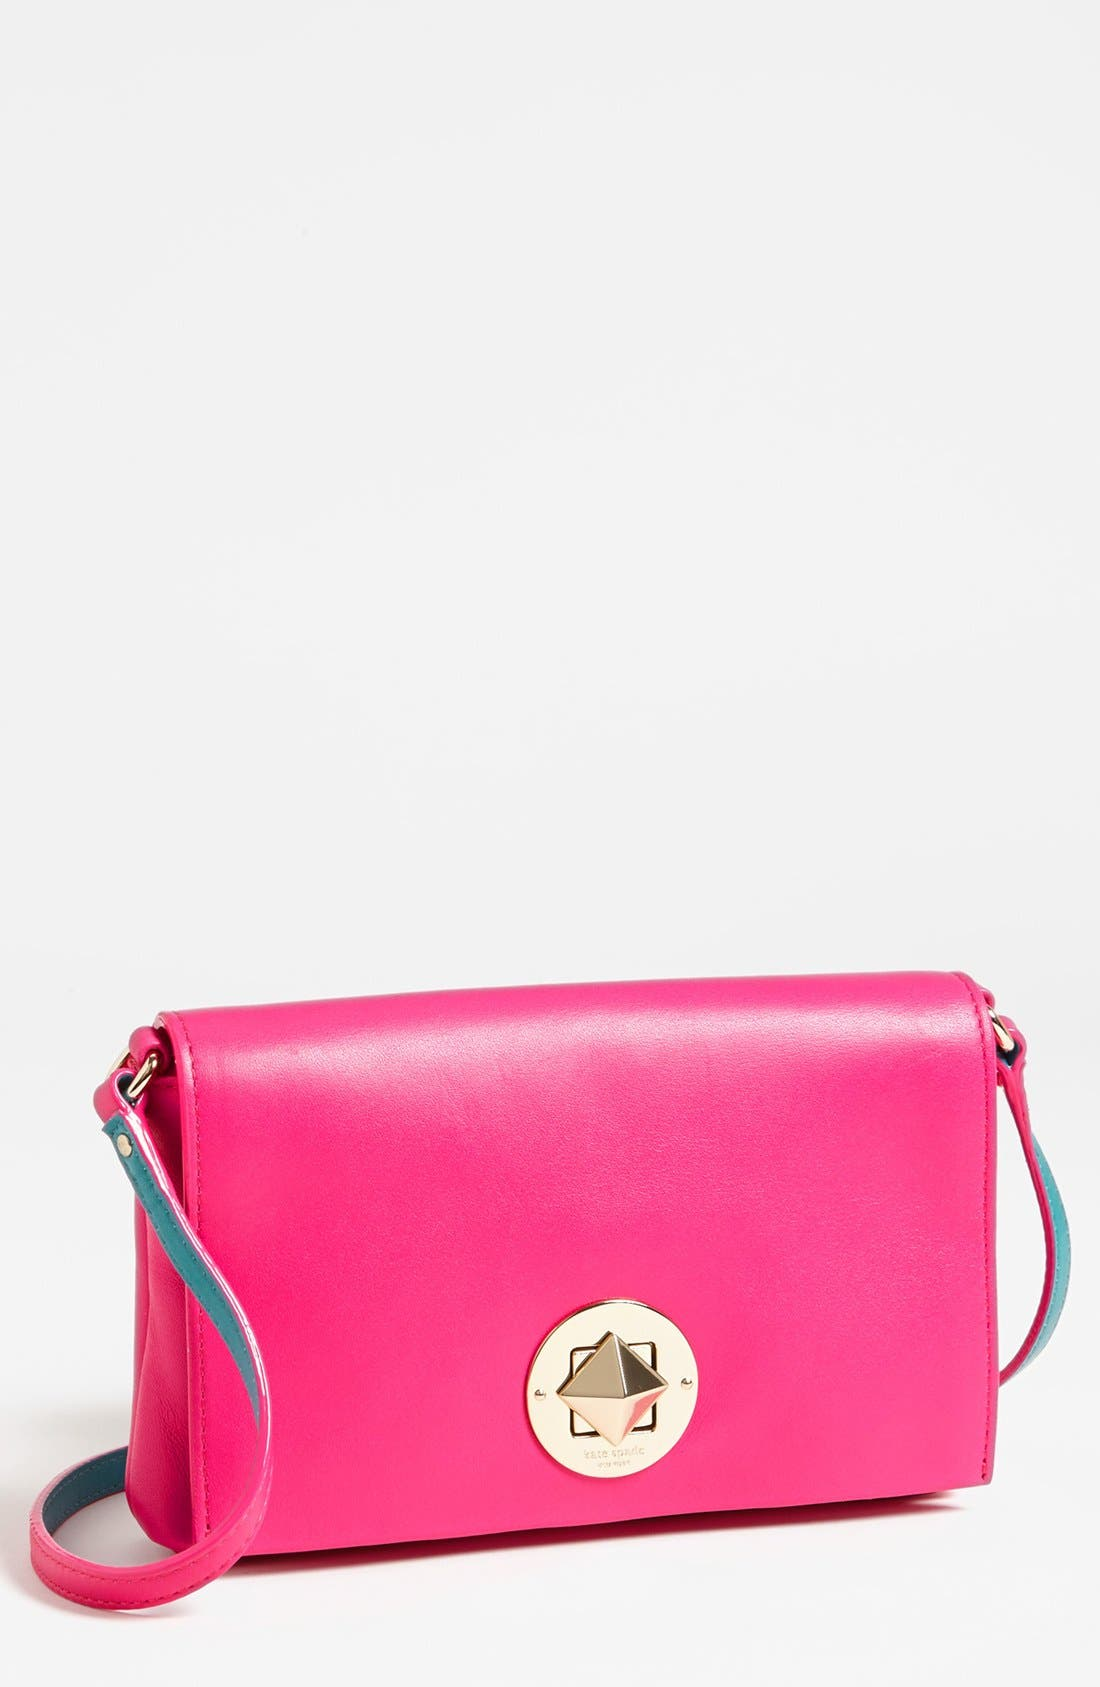 Main Image - kate spade new york 'brightspot avenue - sally' crossbody bag